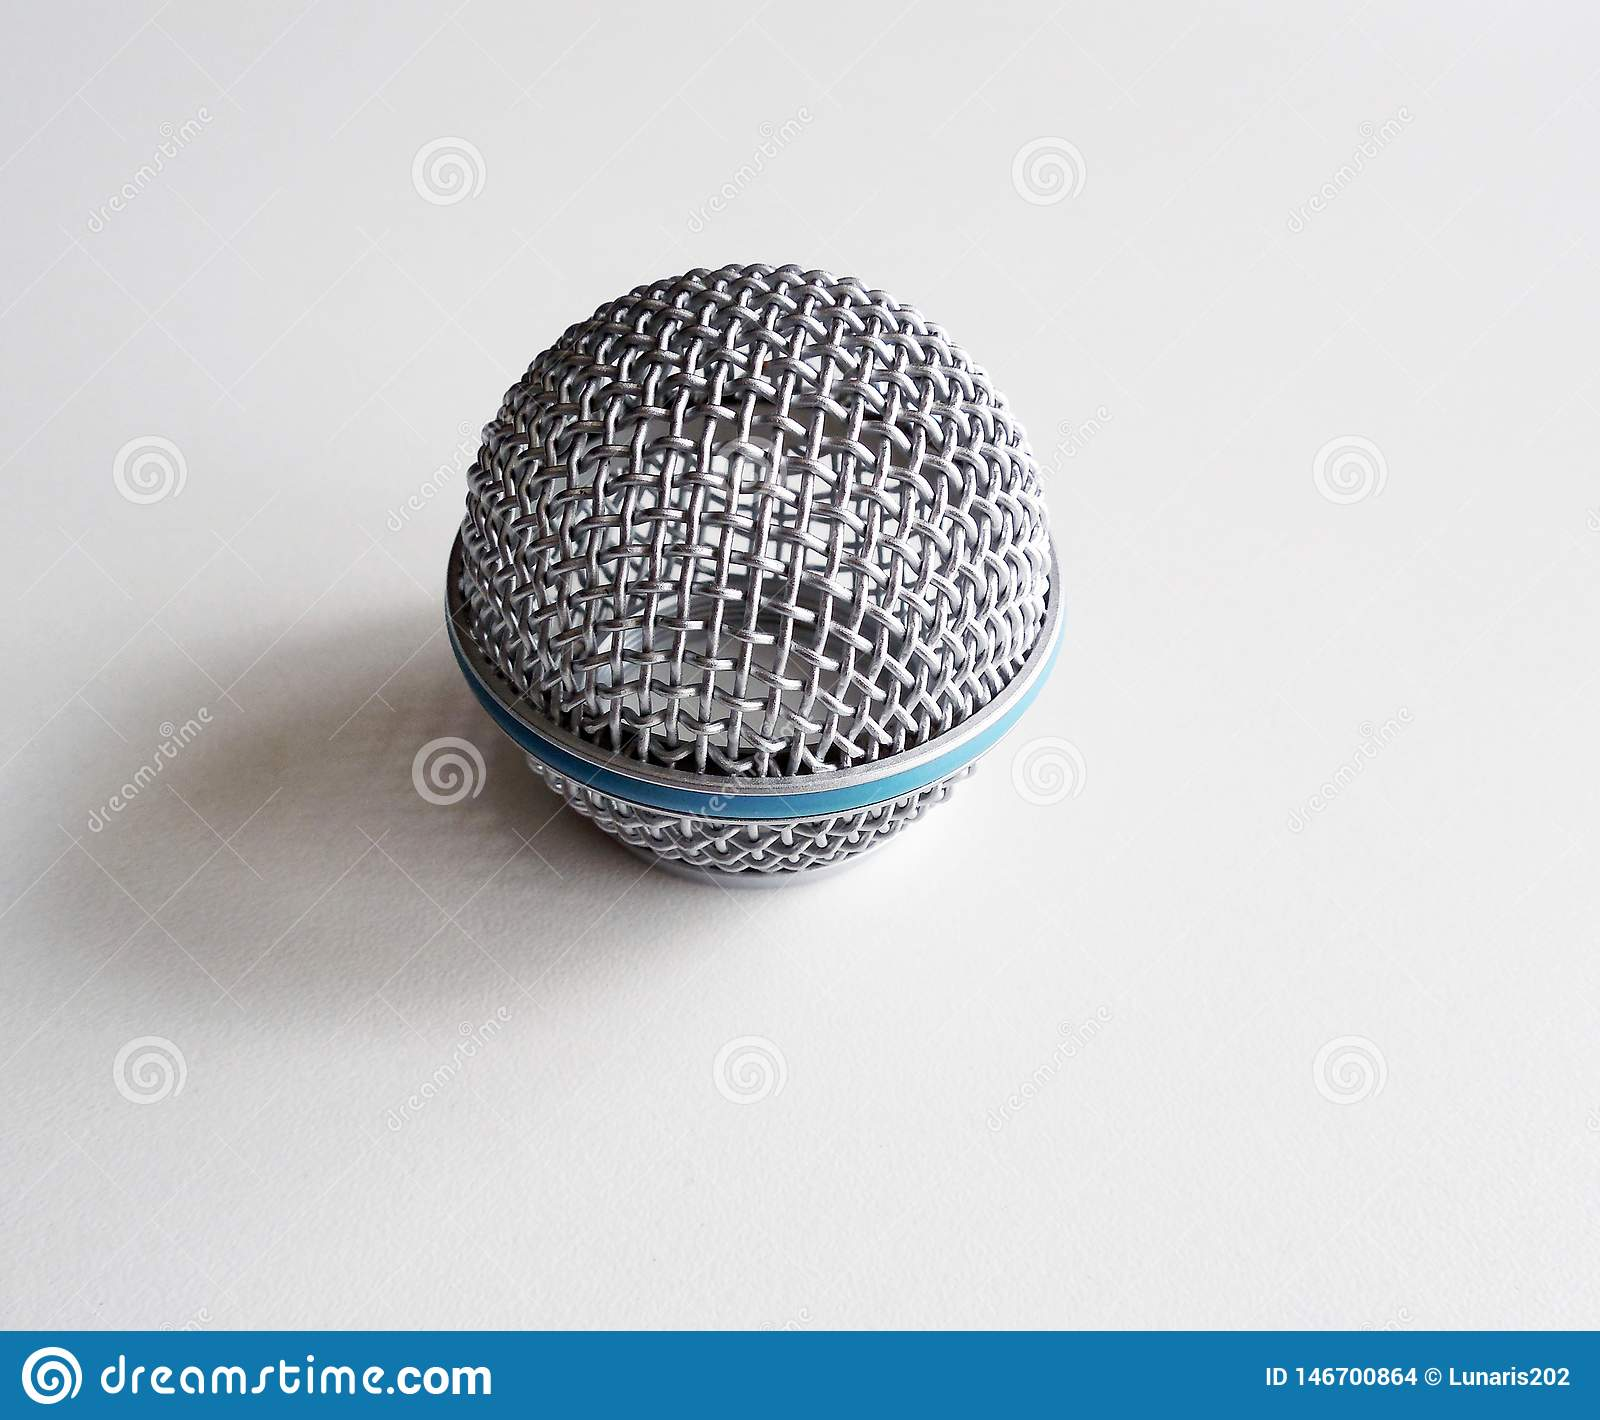 Round metal mesh on the microphone